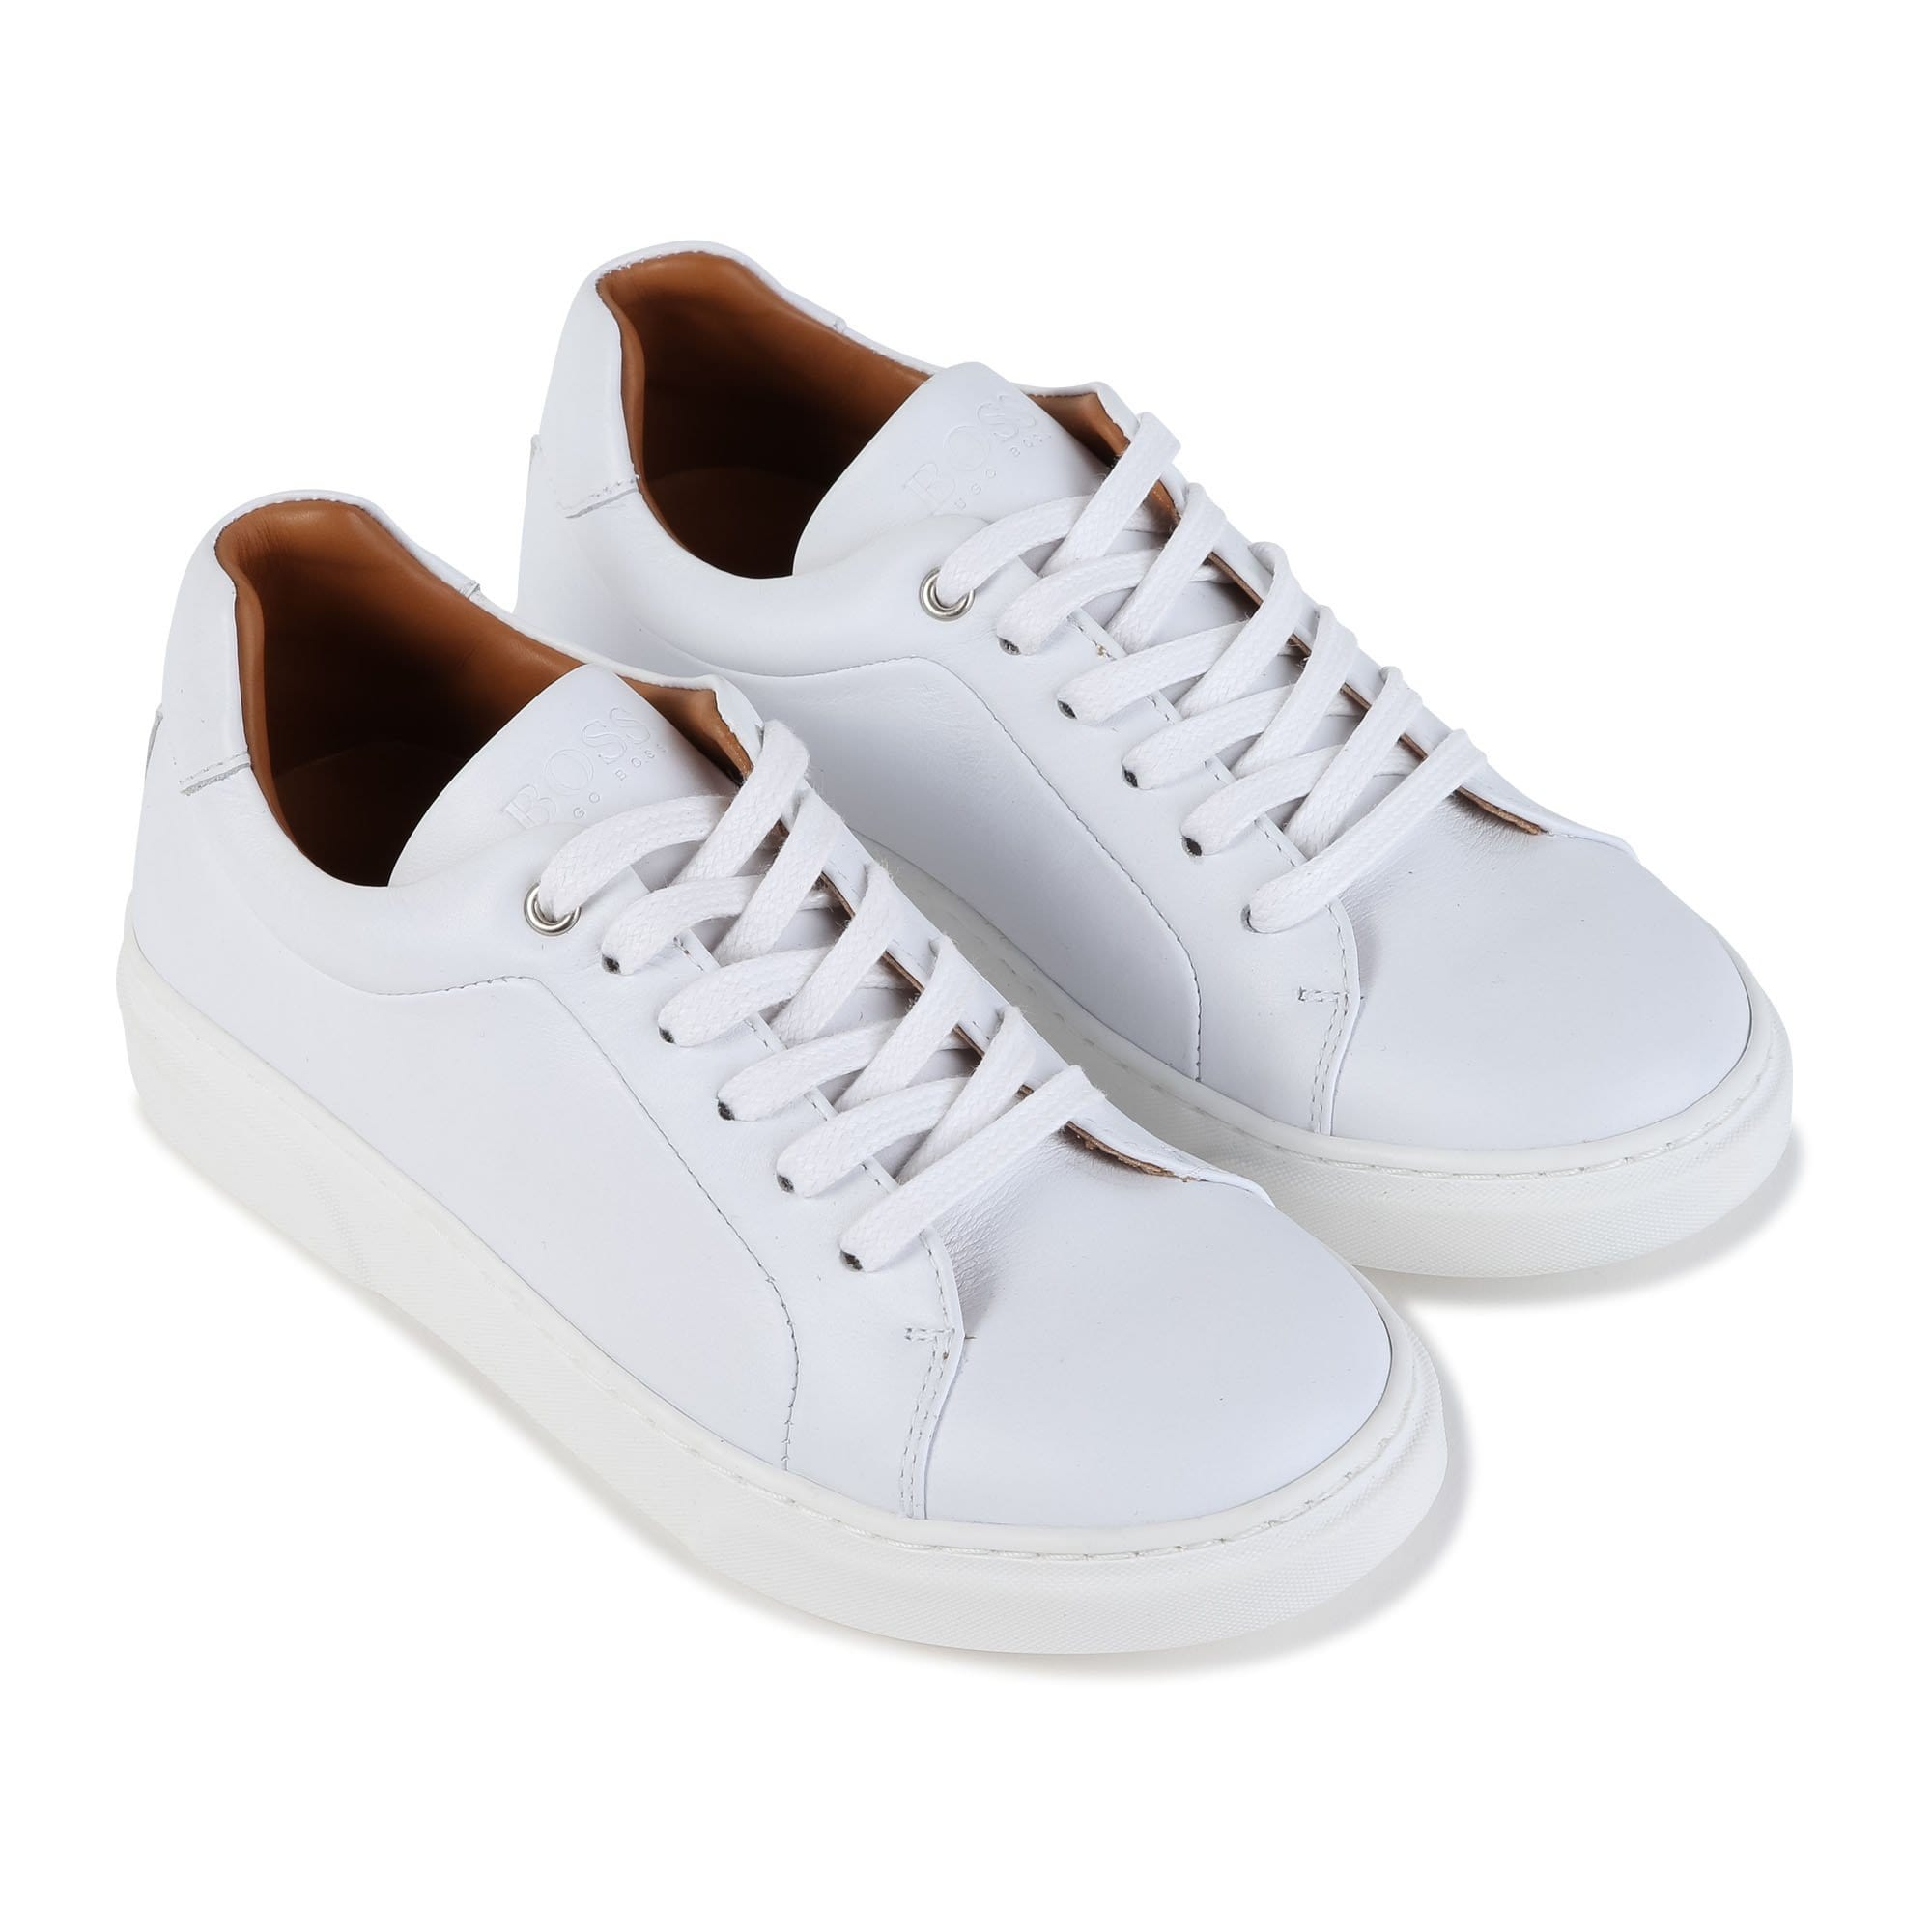 Hugo Boss White Trainers J29207/10B